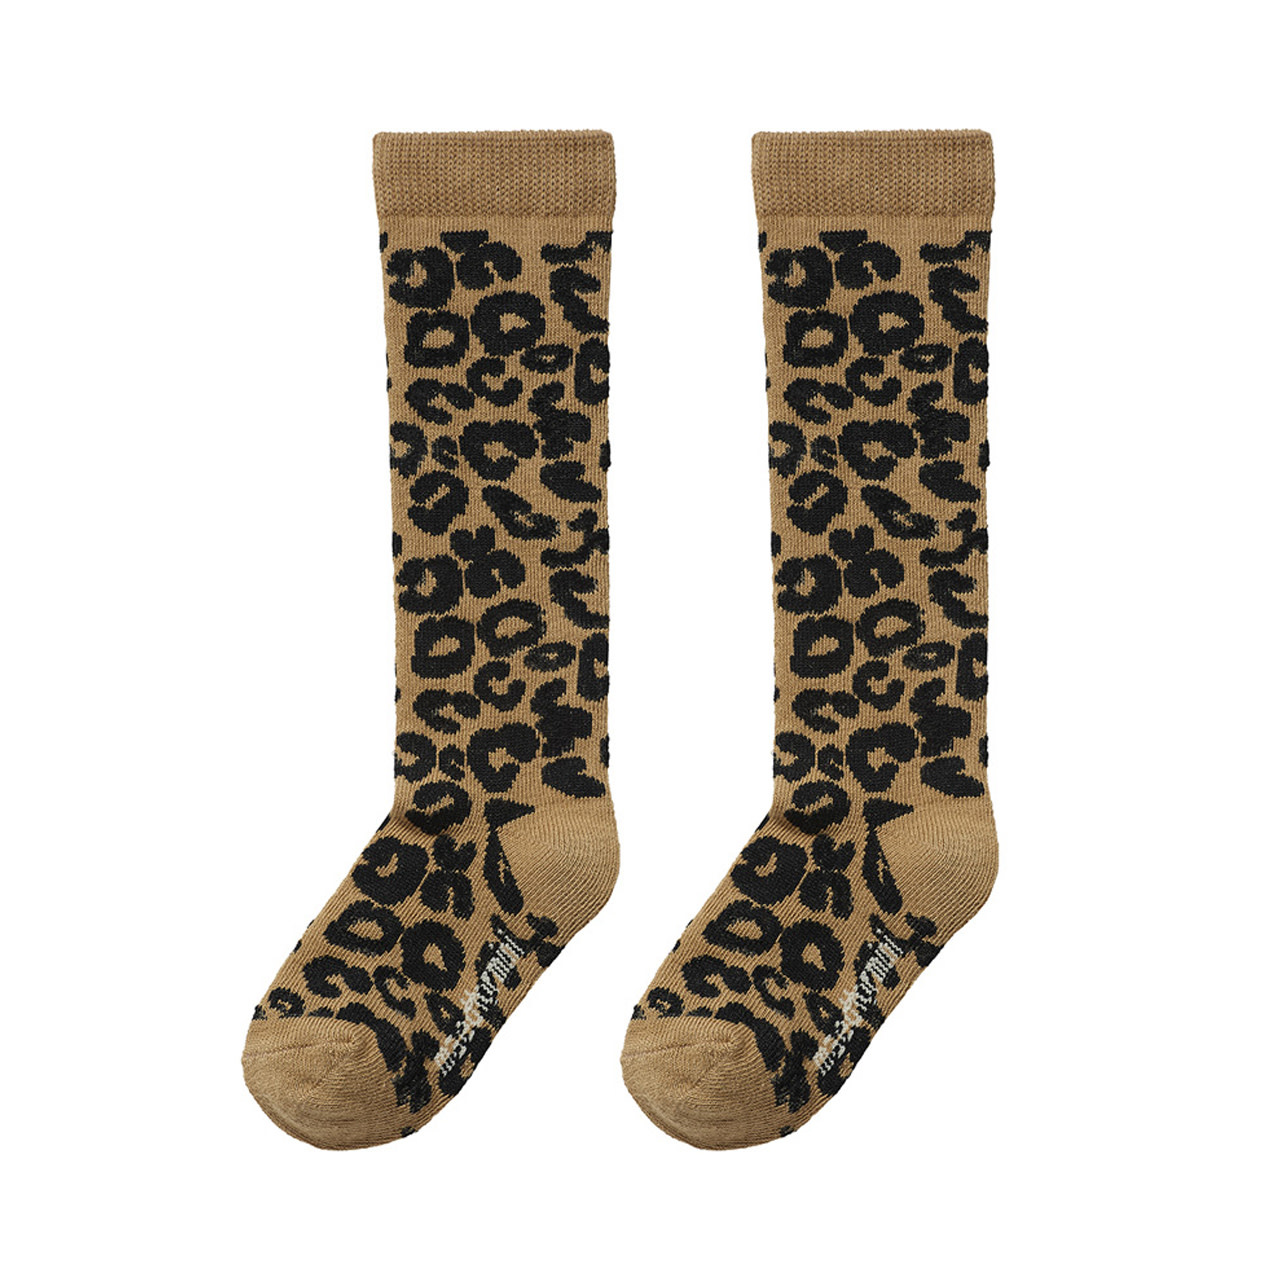 Maed For mini Maed for mini - Knee socks Brown leopard aop